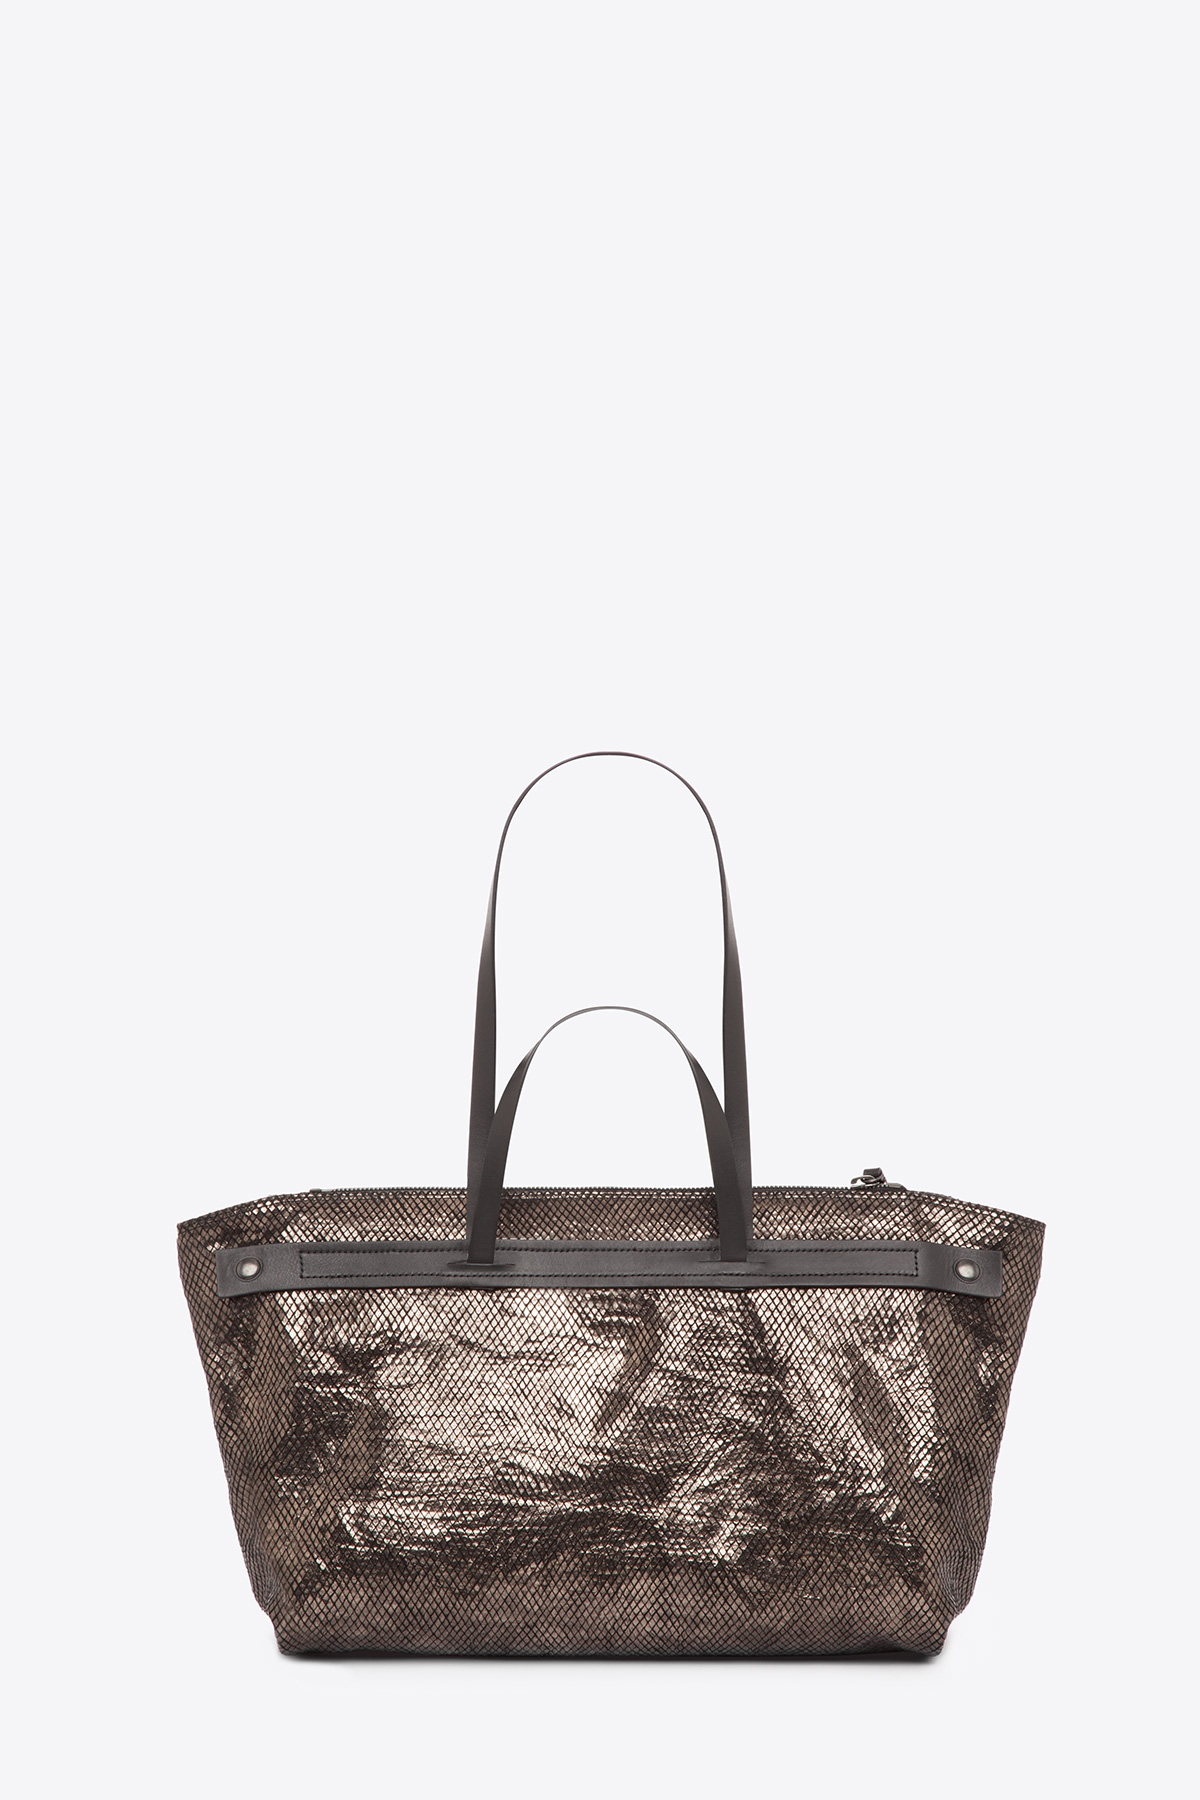 dclr007s-tote-a24-backsnakebronze-back2